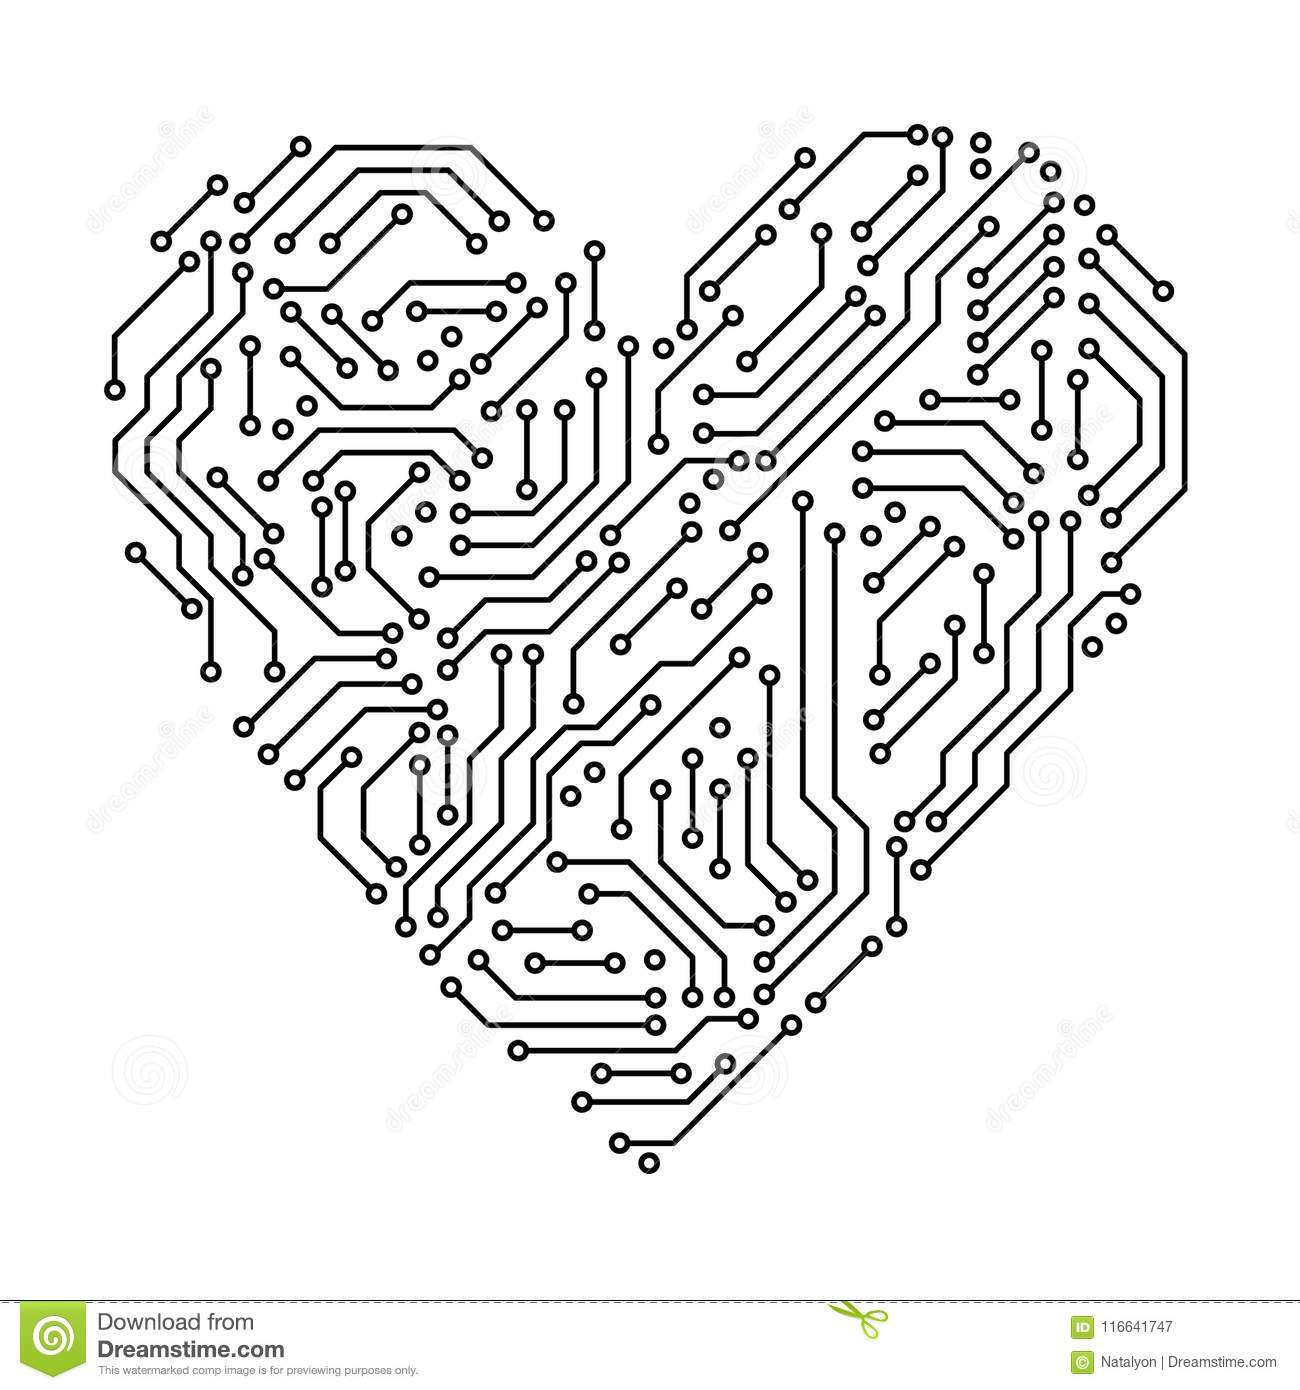 printed circuit board black and white heart shape computer technology  vector stock vector